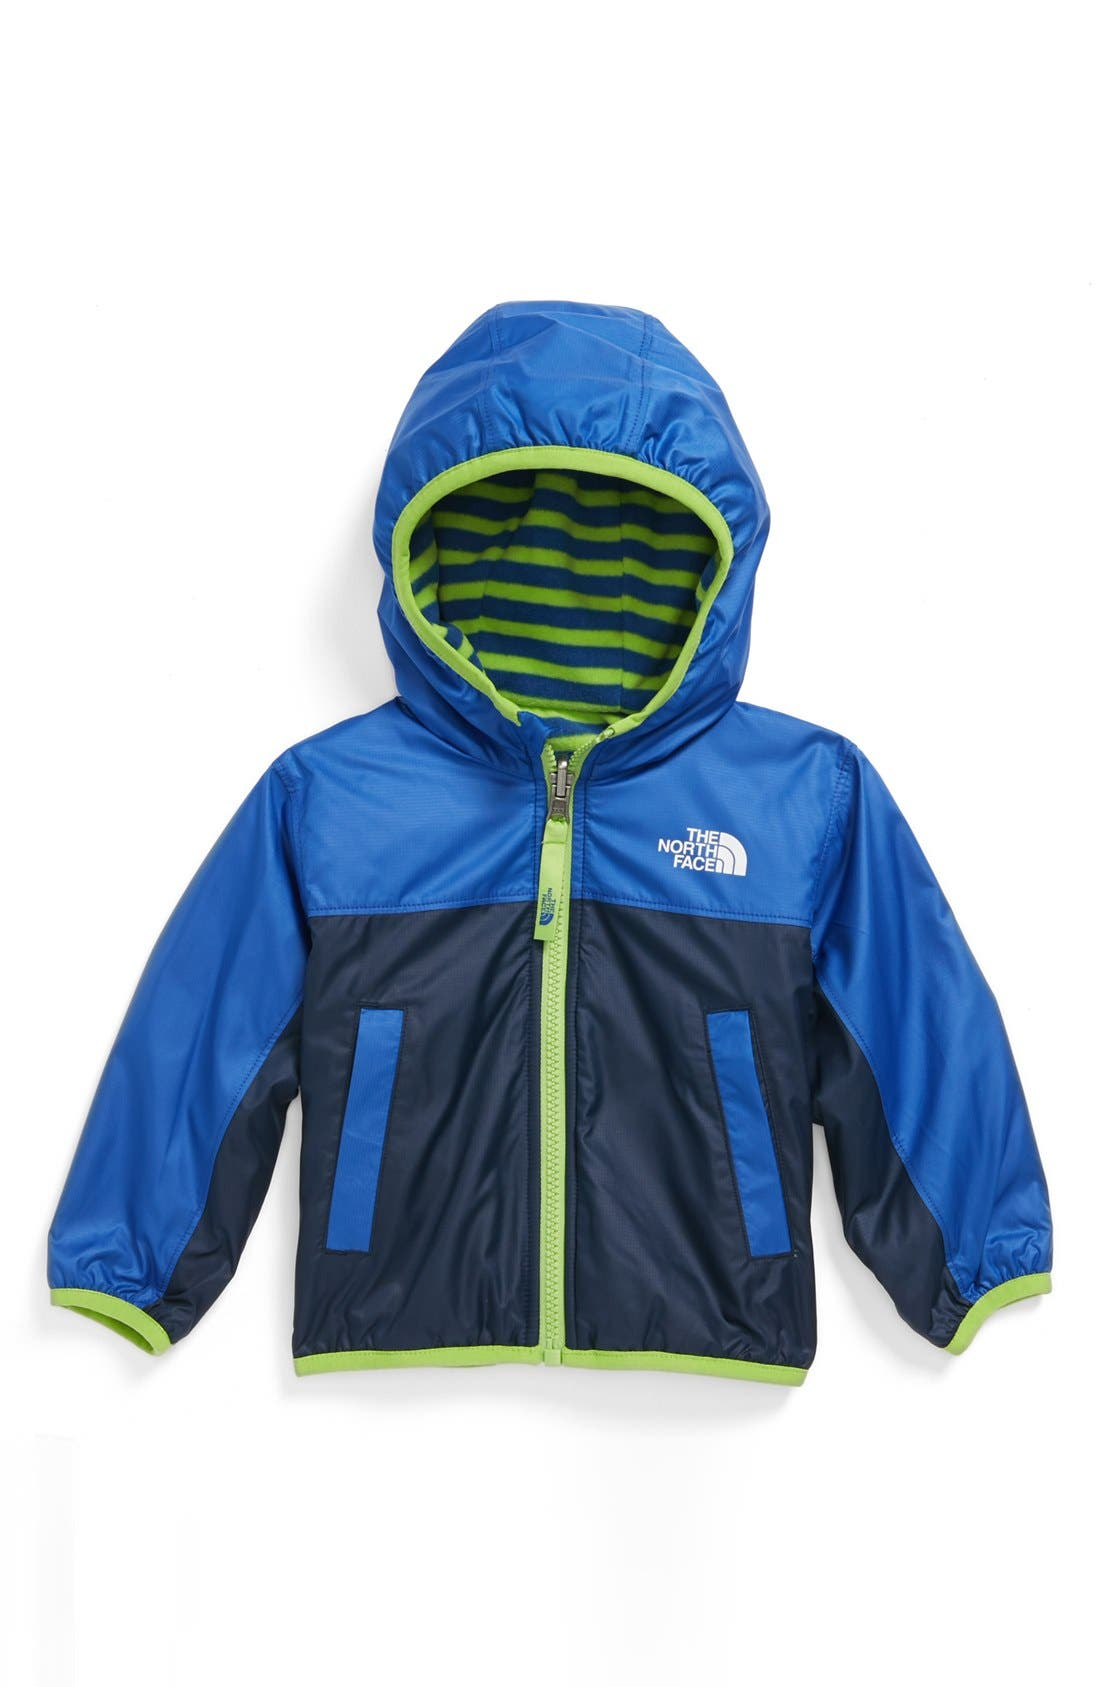 Alternate Image 1 Selected - The North Face 'Scout' Reversible Wind Jacket (Baby Boys)